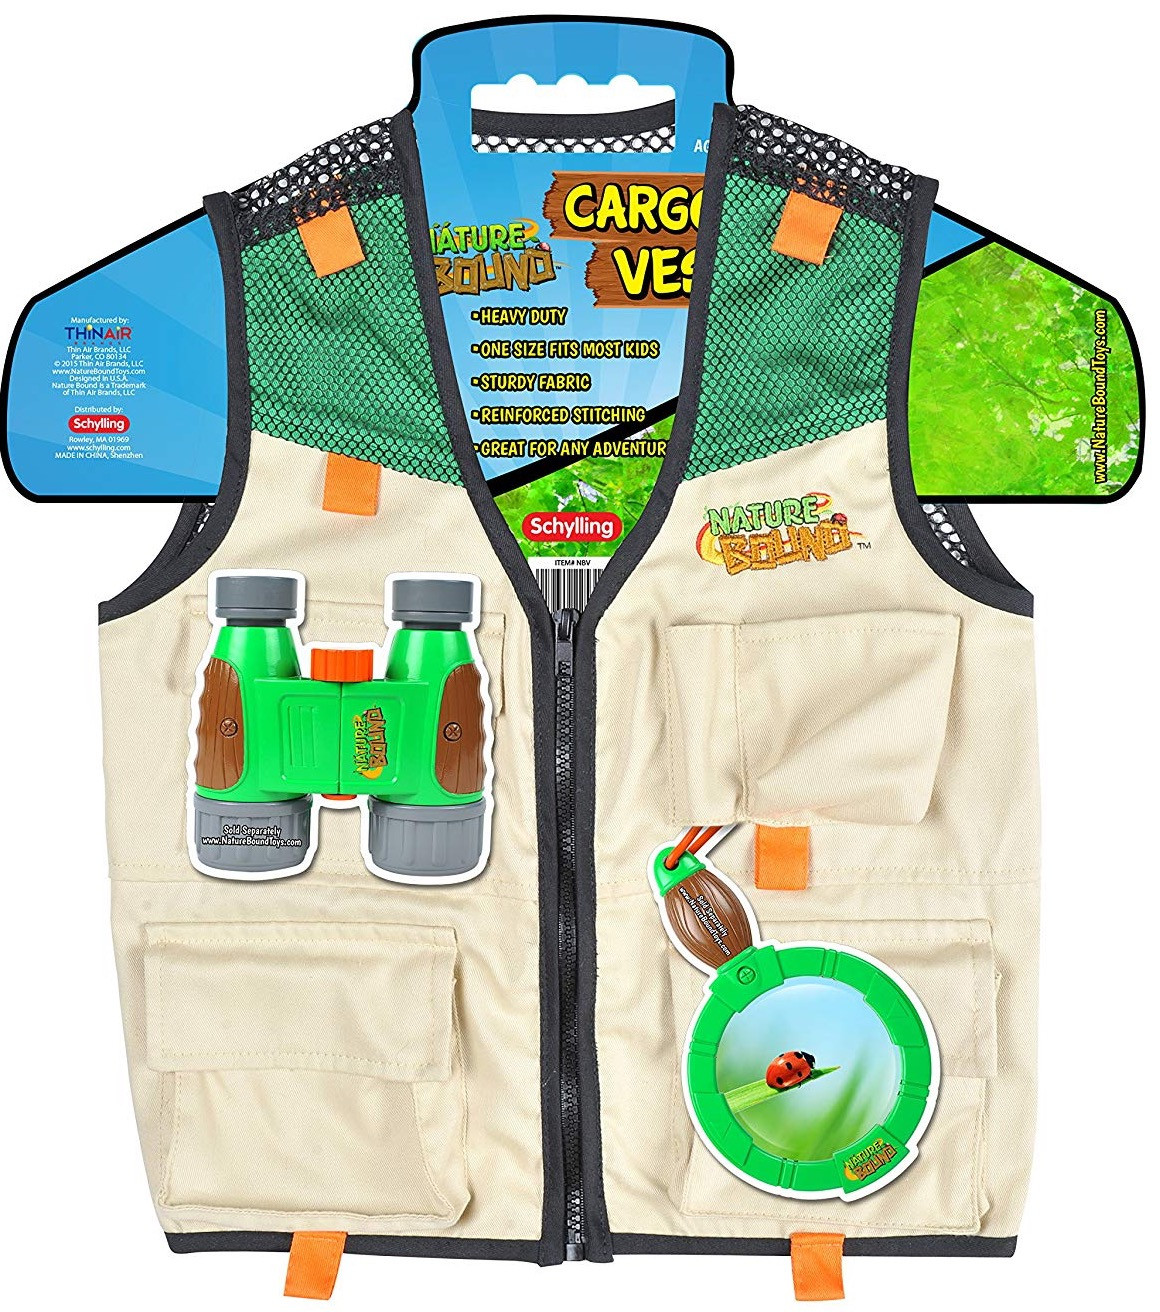 cargo_vest_welldonestuff